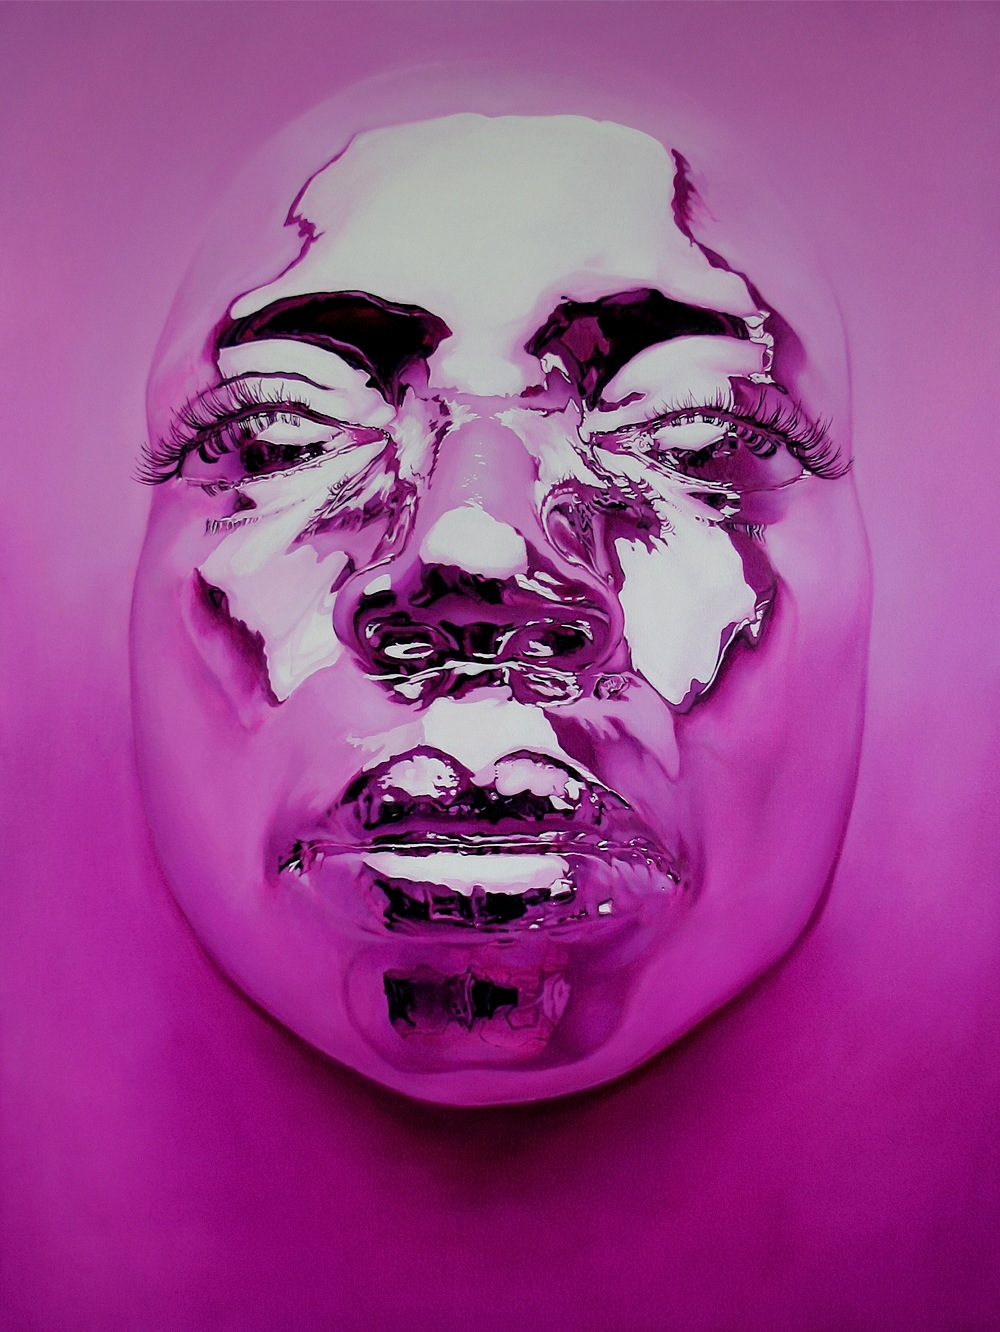 Hyper-realistic Chrome Mask Paintings by Kip Omolade